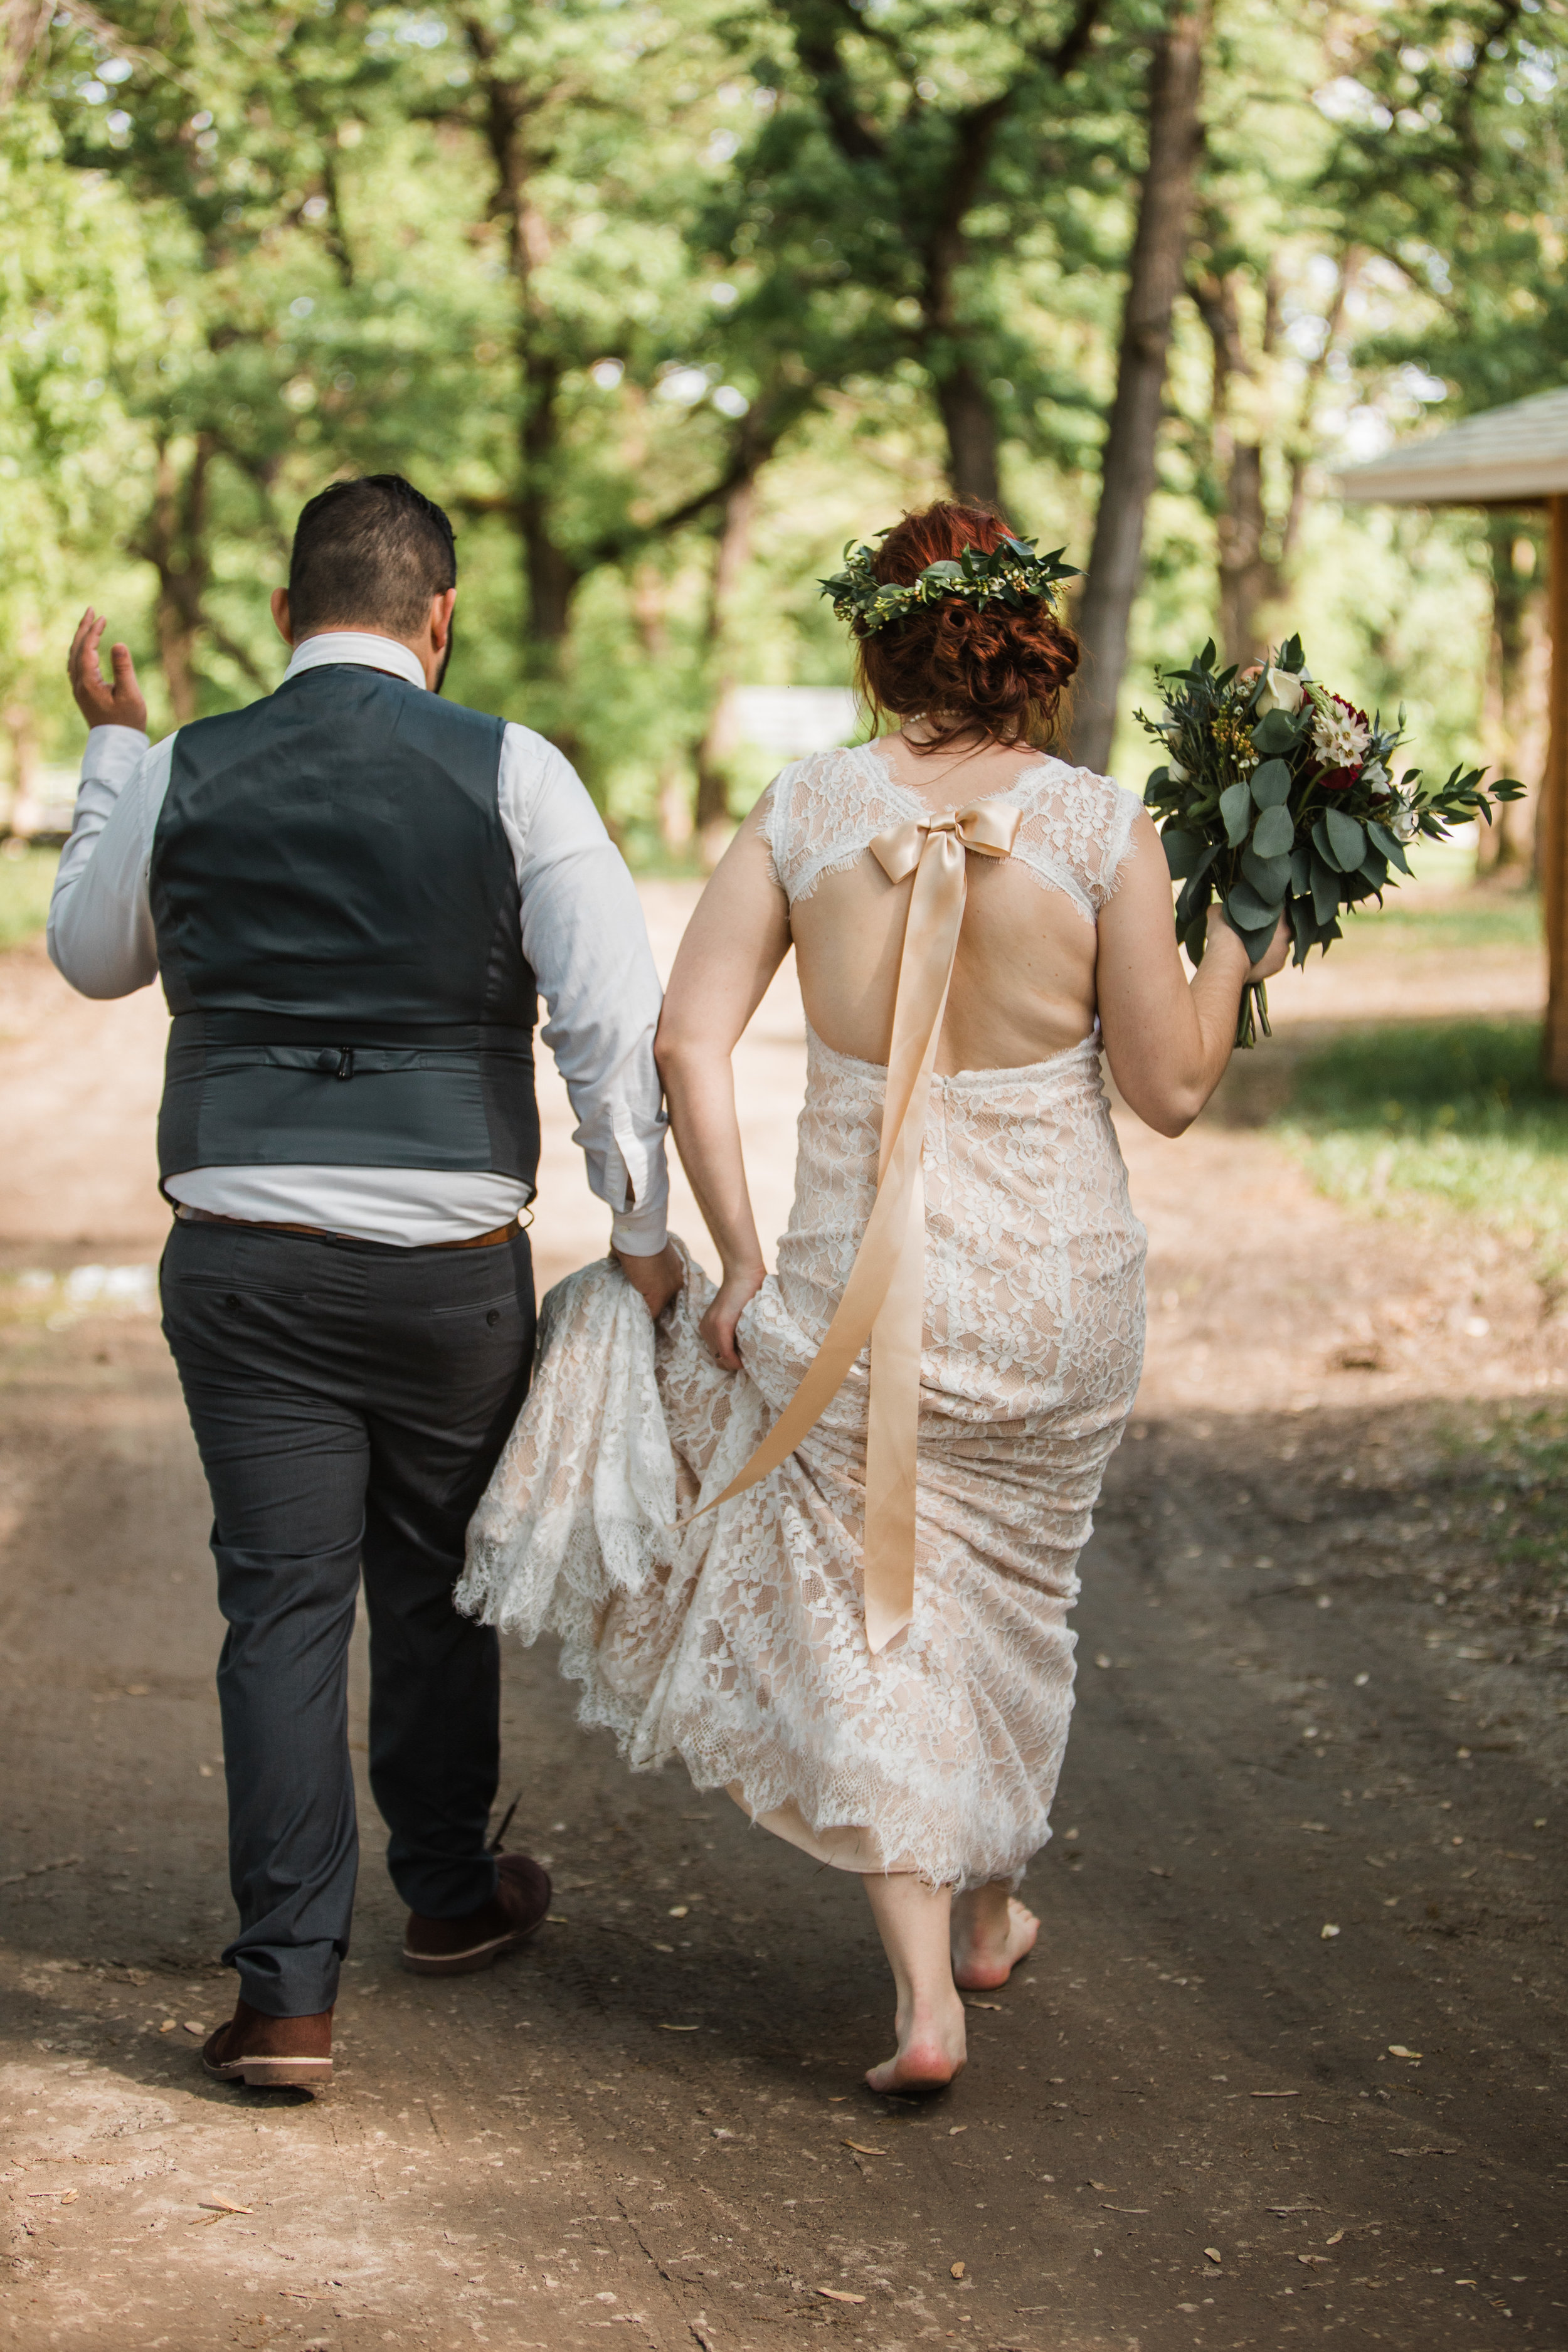 barefoot bride walking with new husband and flowers